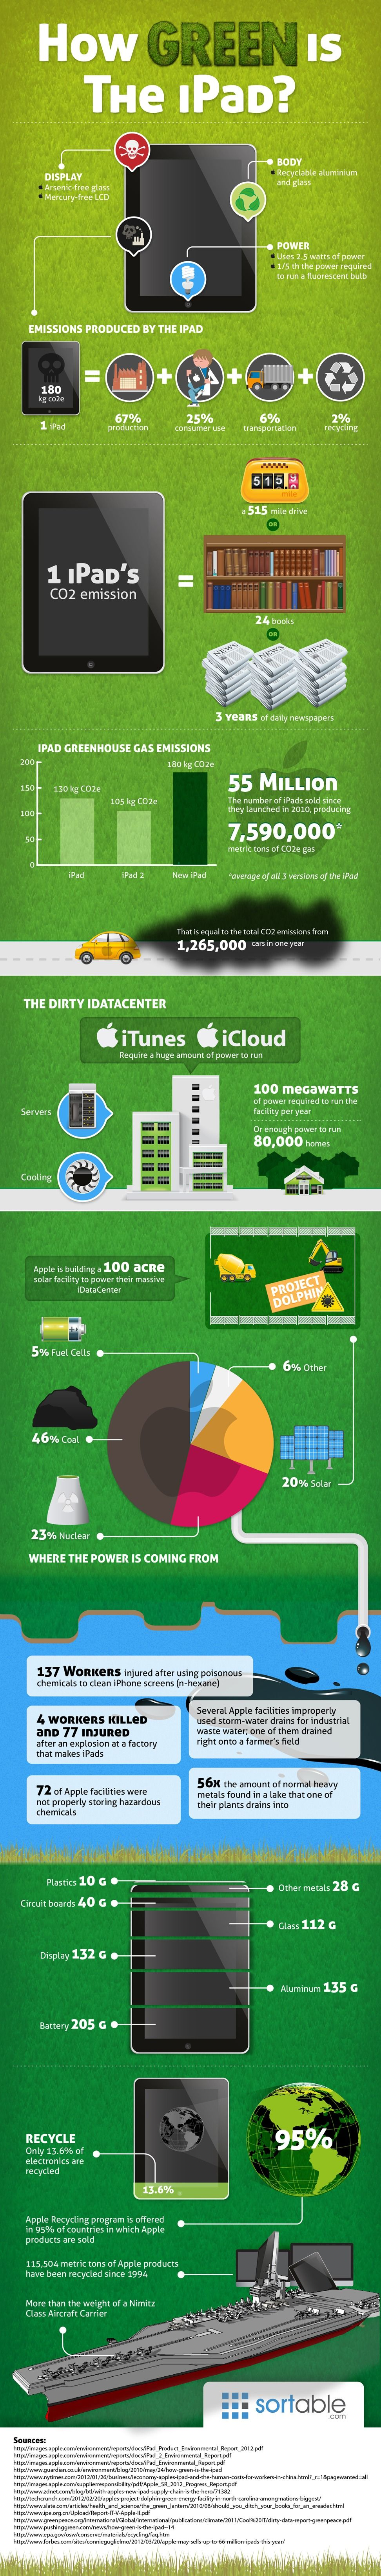 How Green Is Your iPad? [INFOGRAPHIC] Infographic